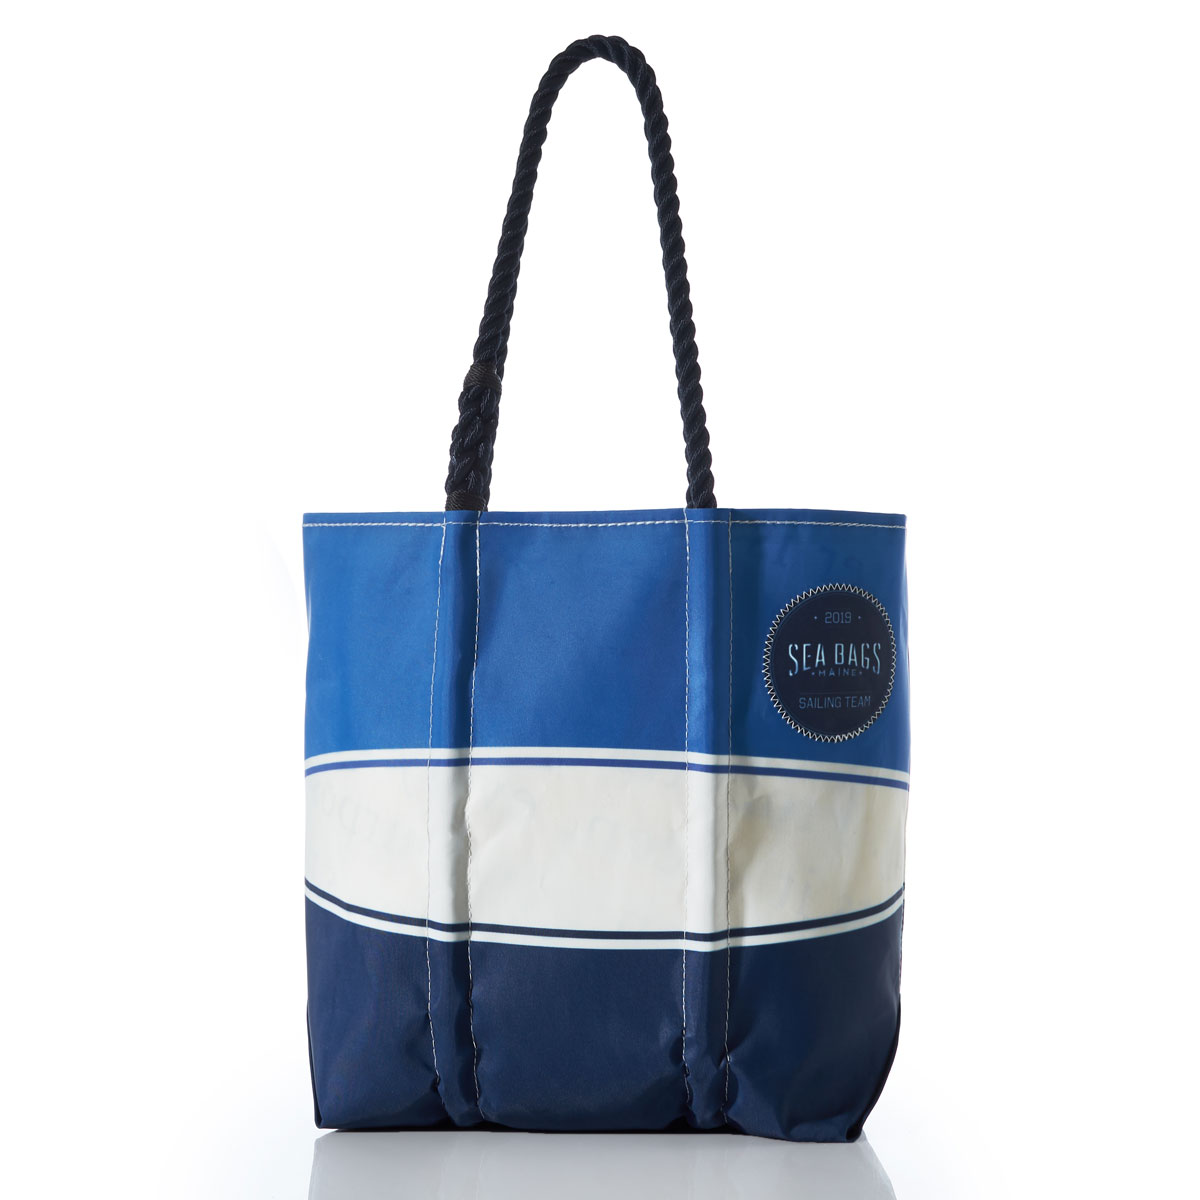 Sea Bags Women's Sailing Team Tote made from recycled sails